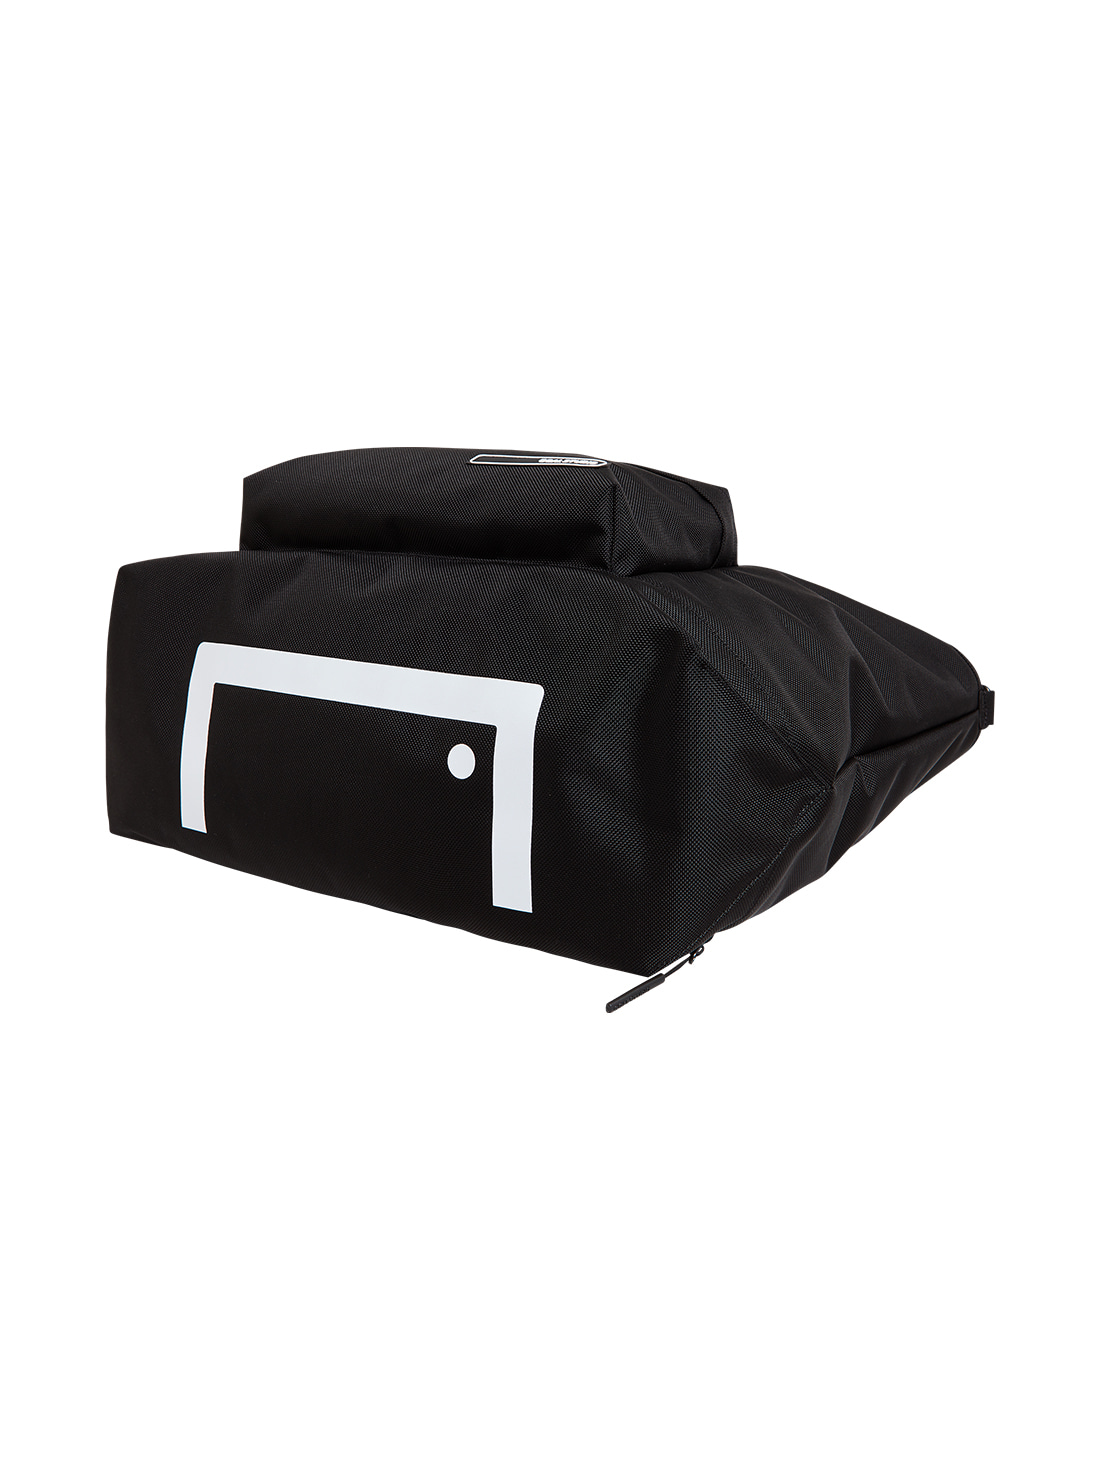 GOALSTUDIO LOGO WAPPEN TOTE BAG - BLACK